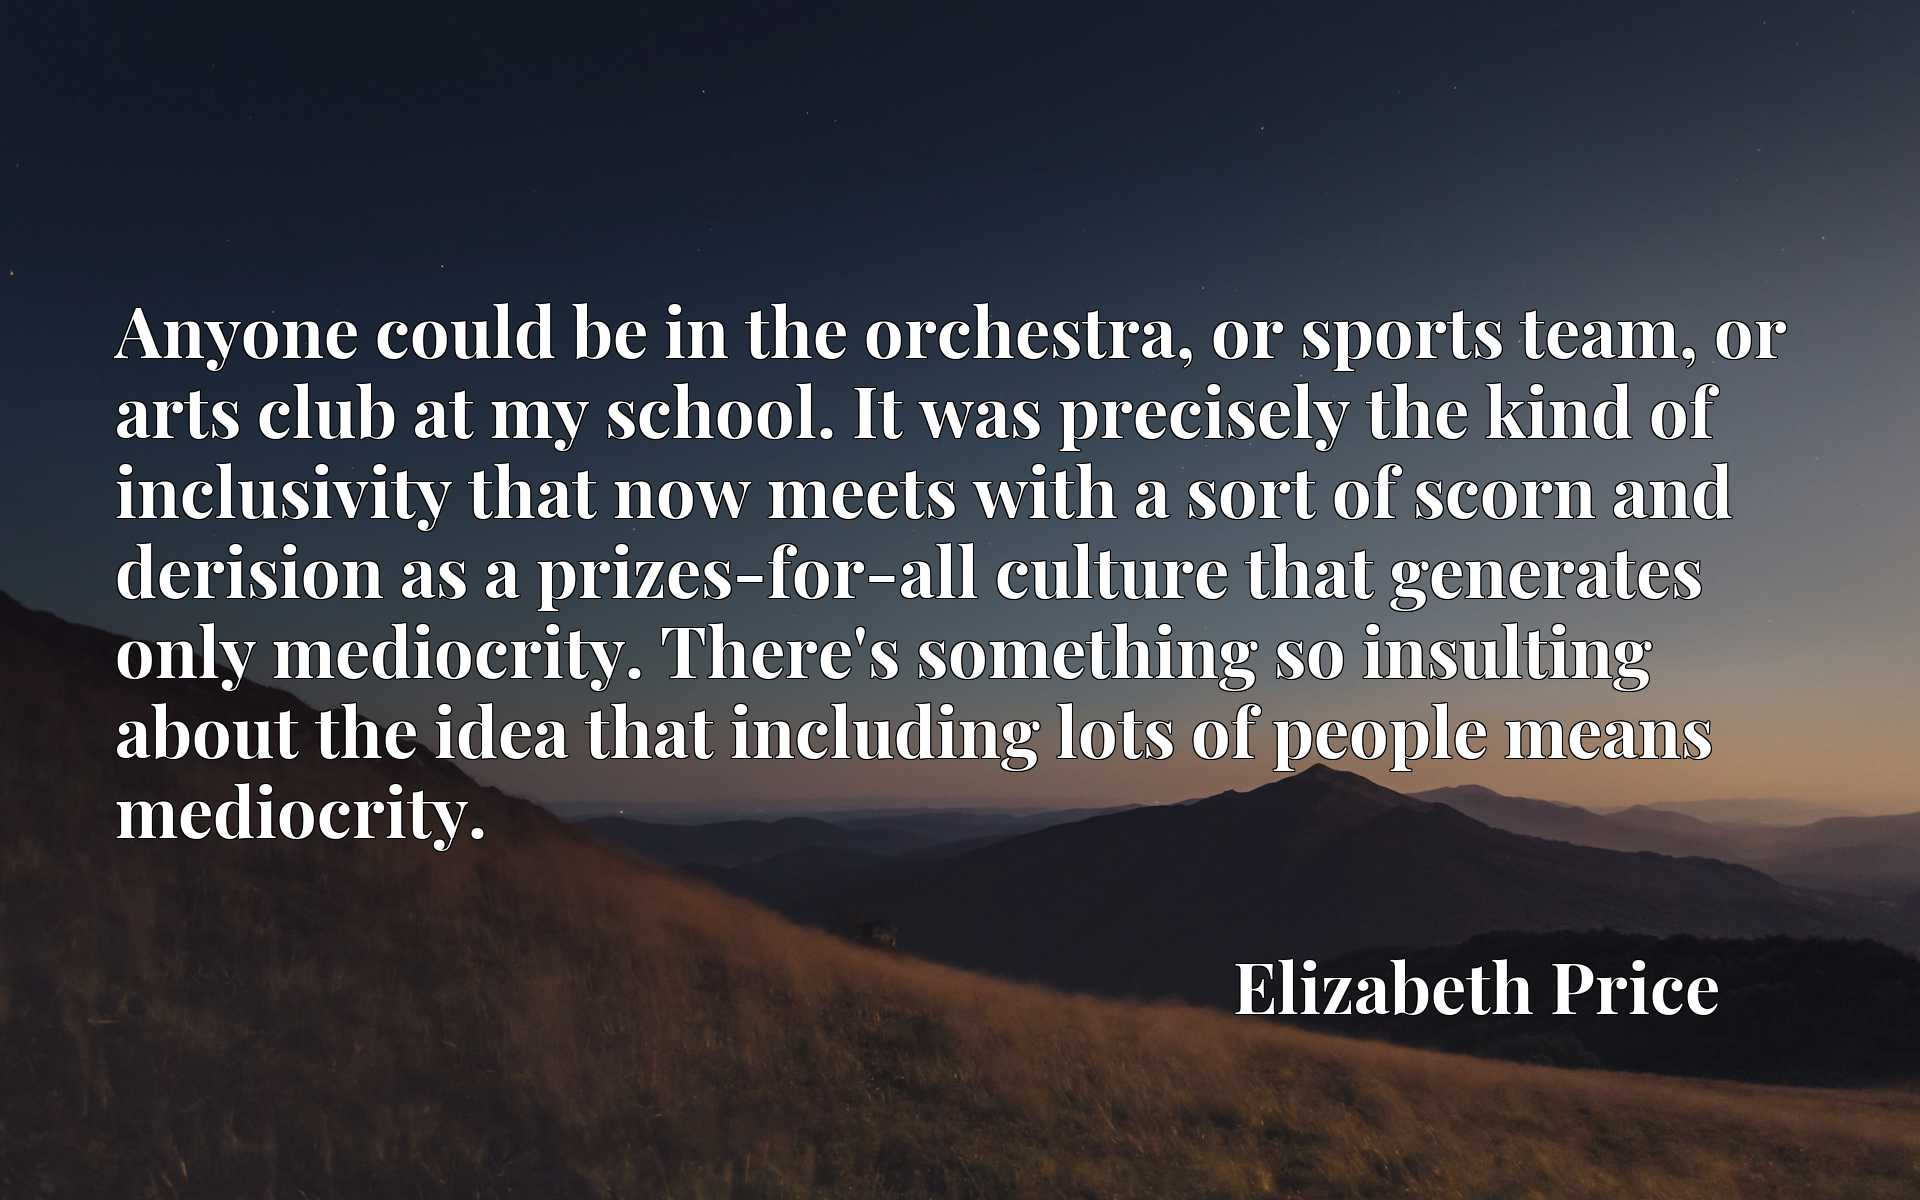 Quote Picture :Anyone could be in the orchestra, or sports team, or arts club at my school. It was precisely the kind of inclusivity that now meets with a sort of scorn and derision as a prizes-for-all culture that generates only mediocrity. There's something so insulting about the idea that including lots of people means mediocrity.